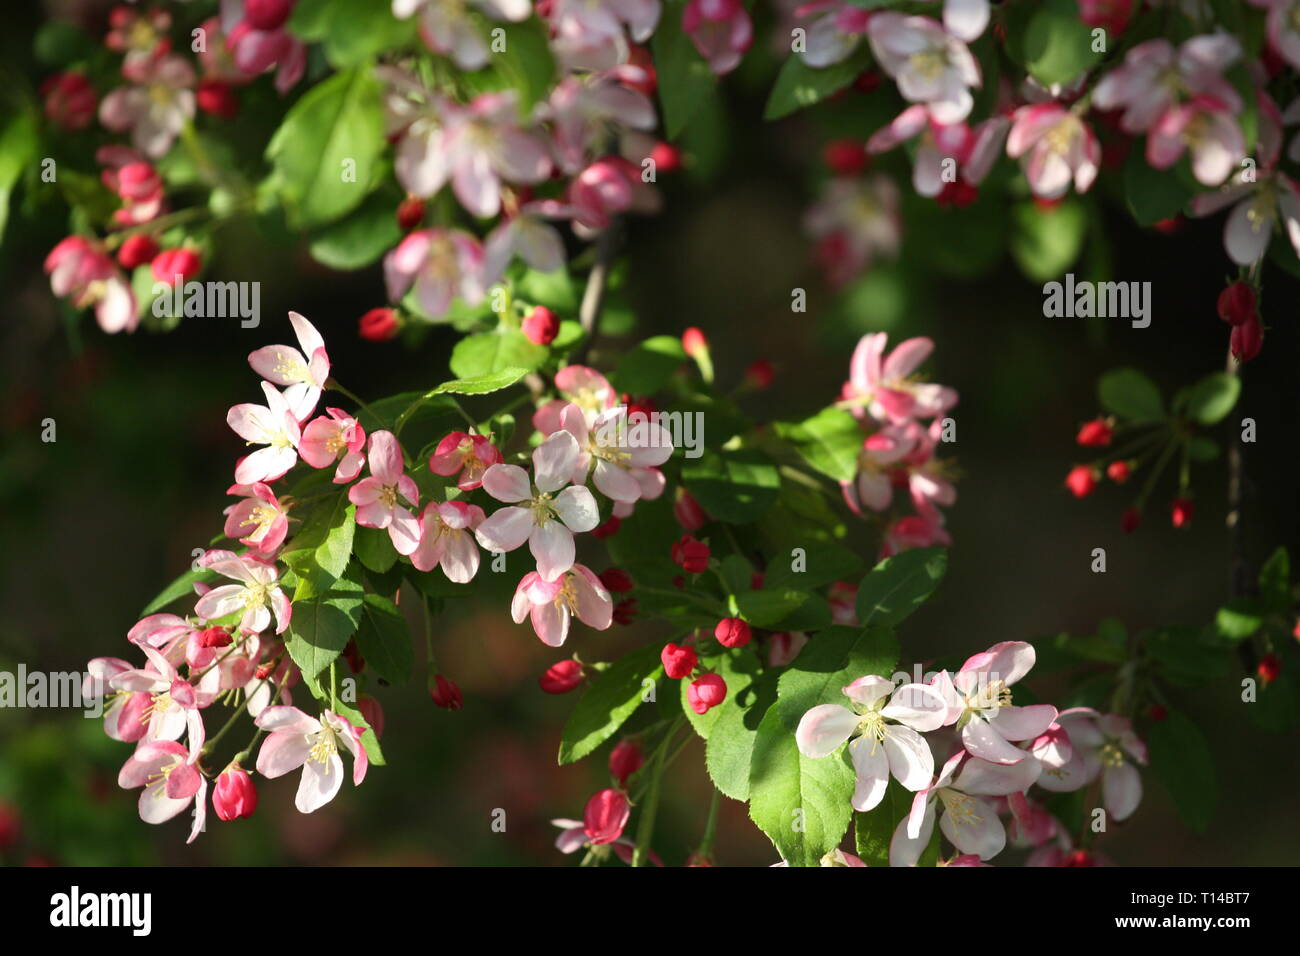 Pink cherry blossom flowers Stock Photo